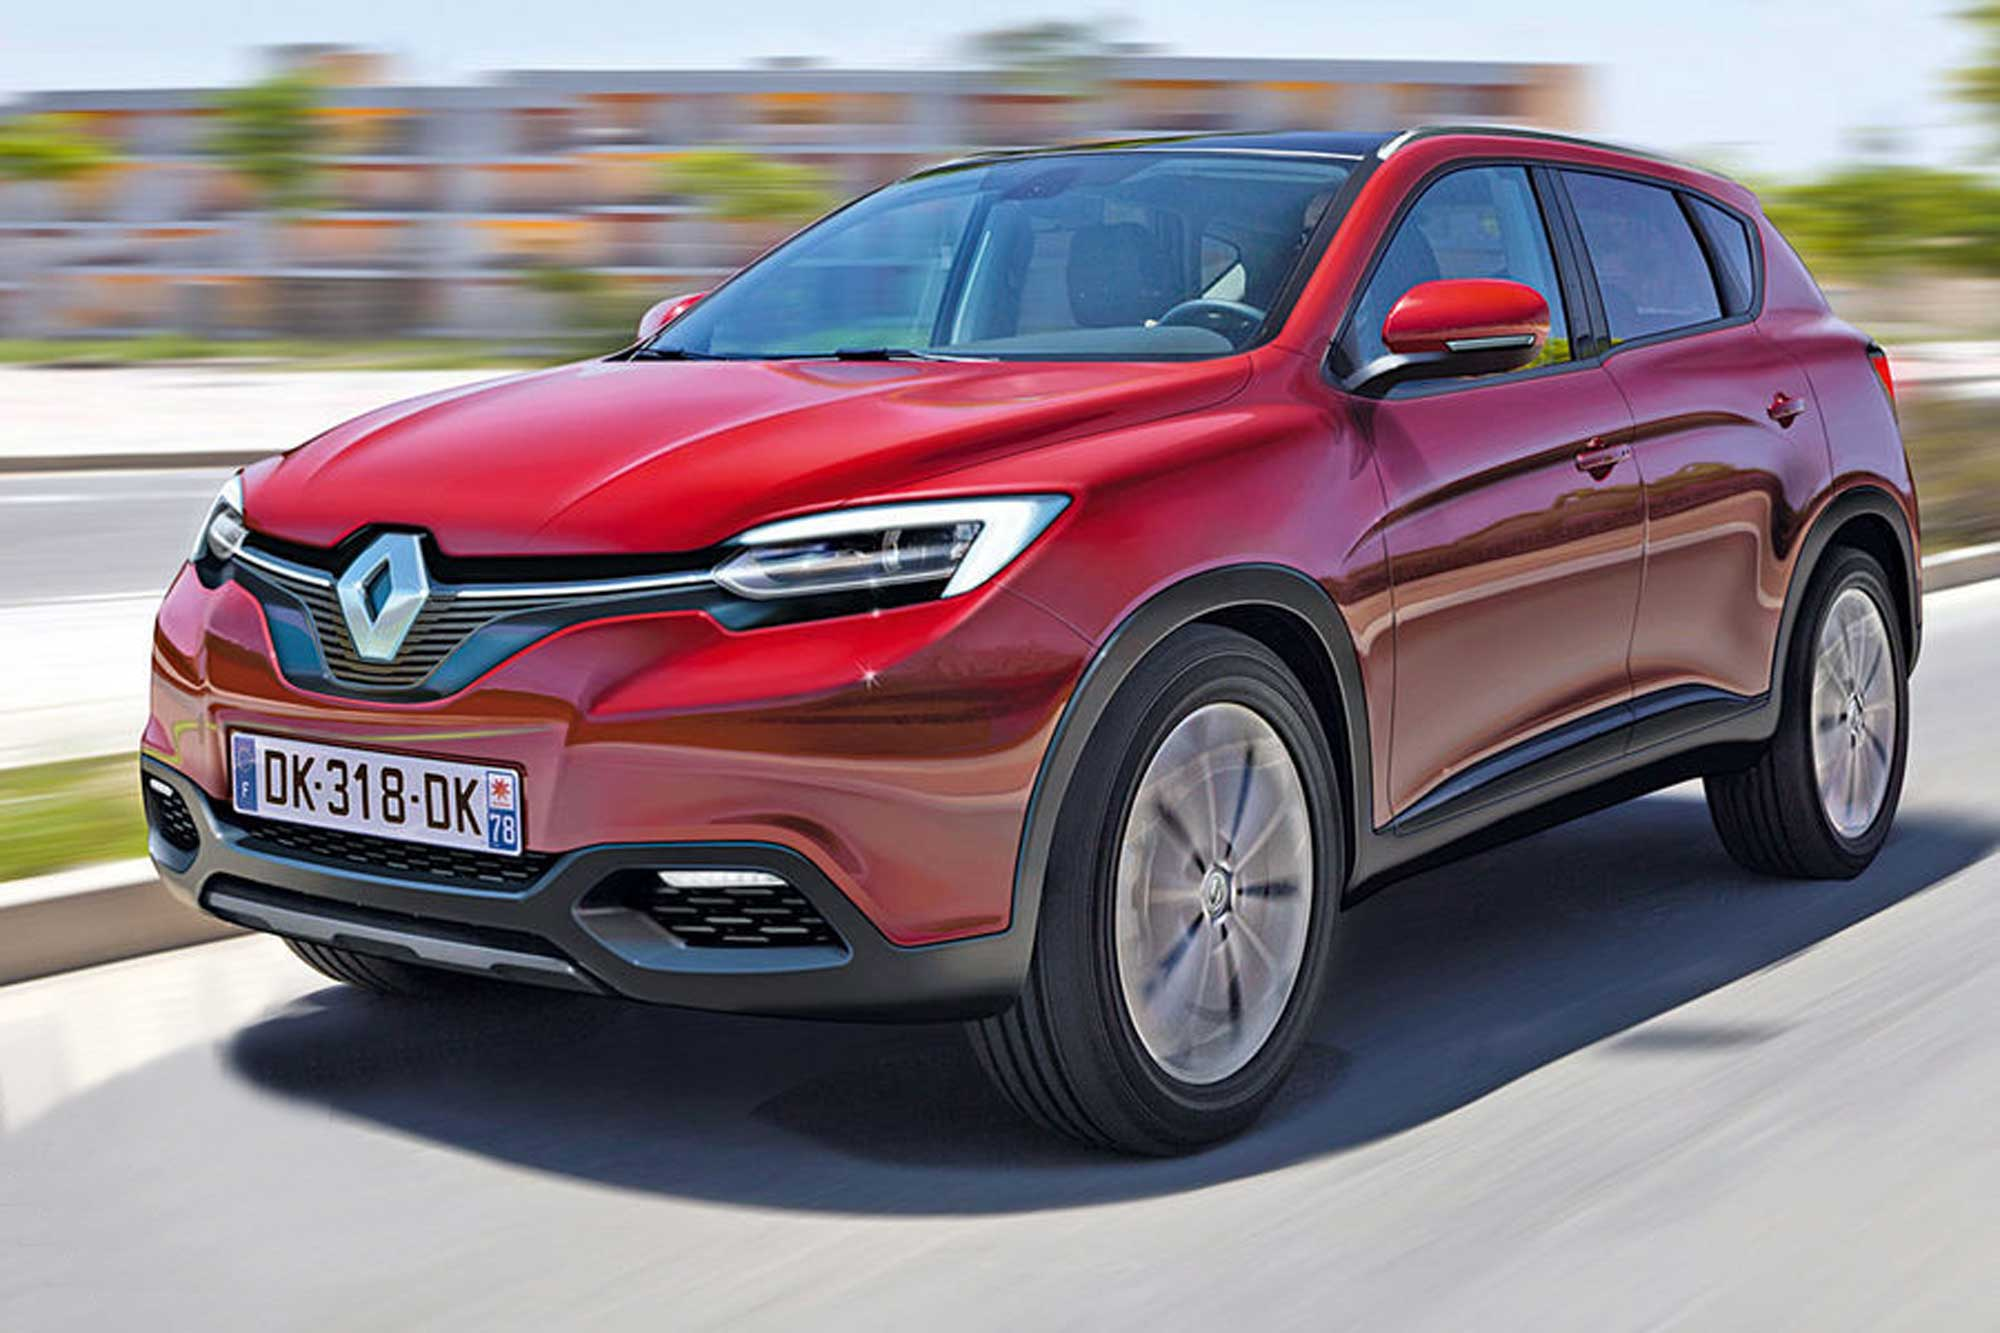 Featured Image of 2015 Renault Megane SUV Preview